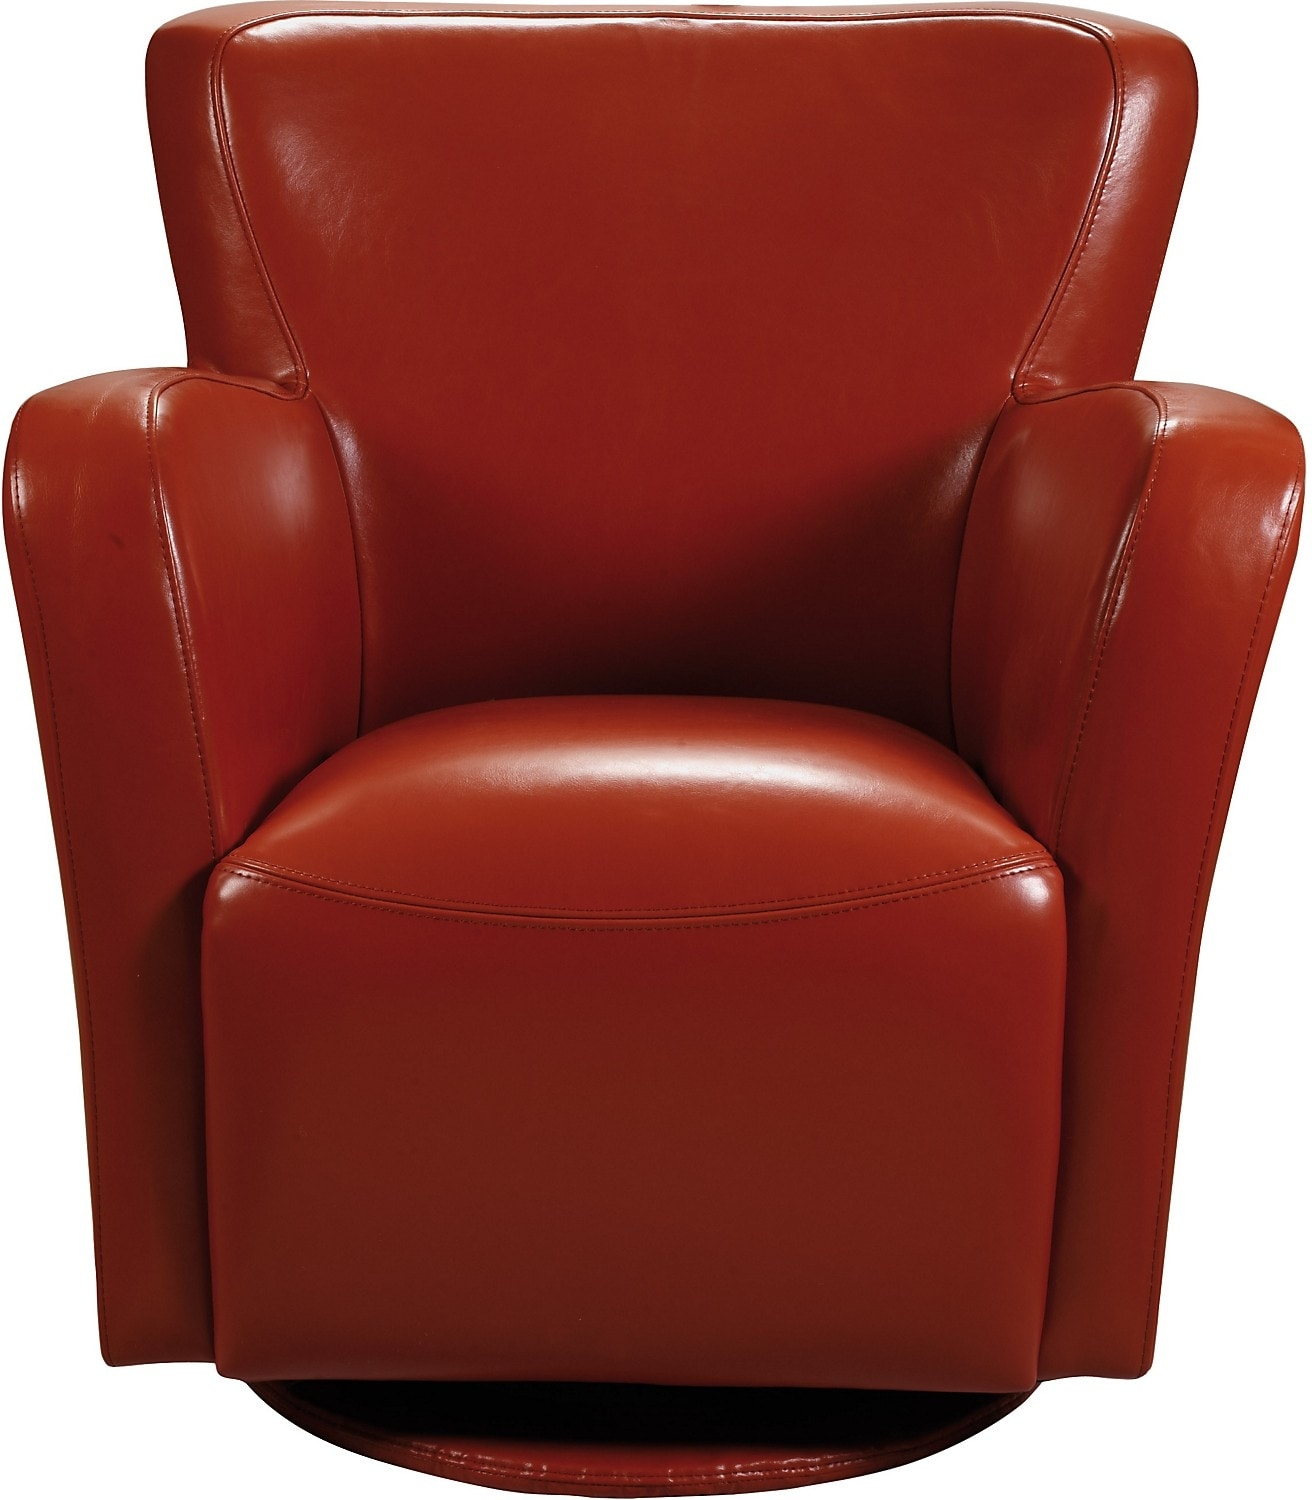 Bonded Leather Swivel Chair - Spice